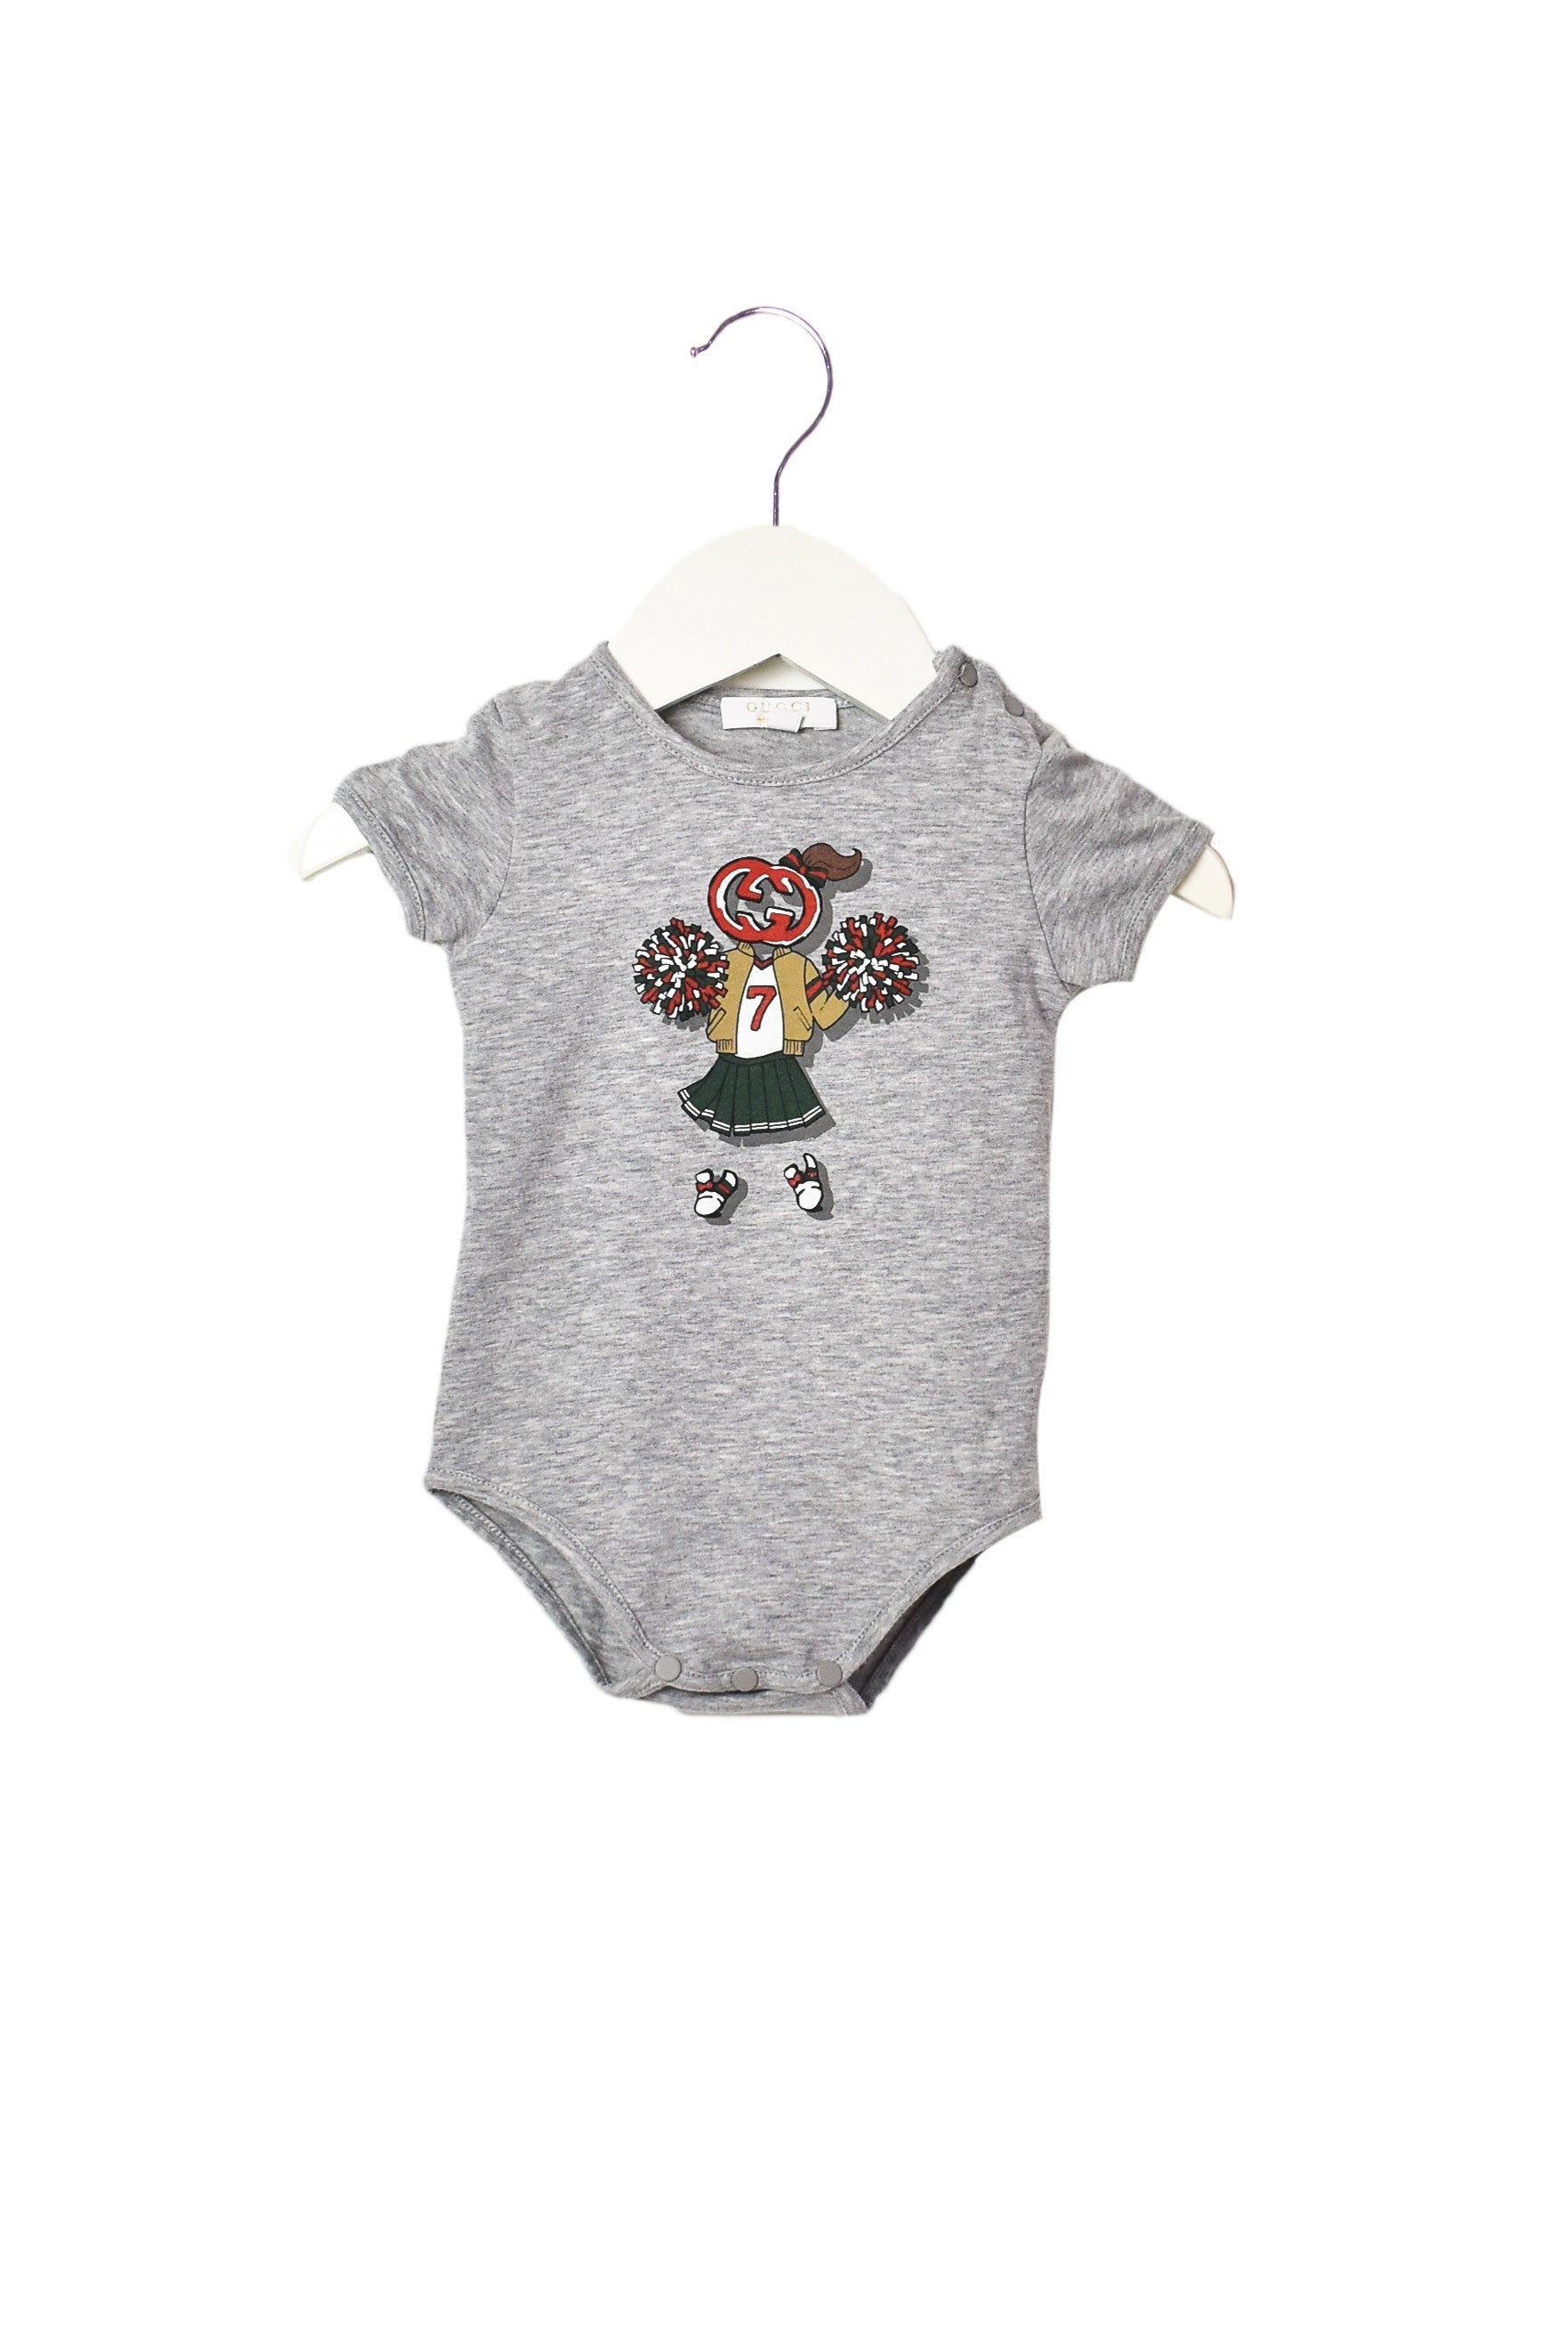 10004185 Gucci Baby~Bodysuit 6-9M, Gucci Retykle | Online Baby & Kids Clothing Hong Kong